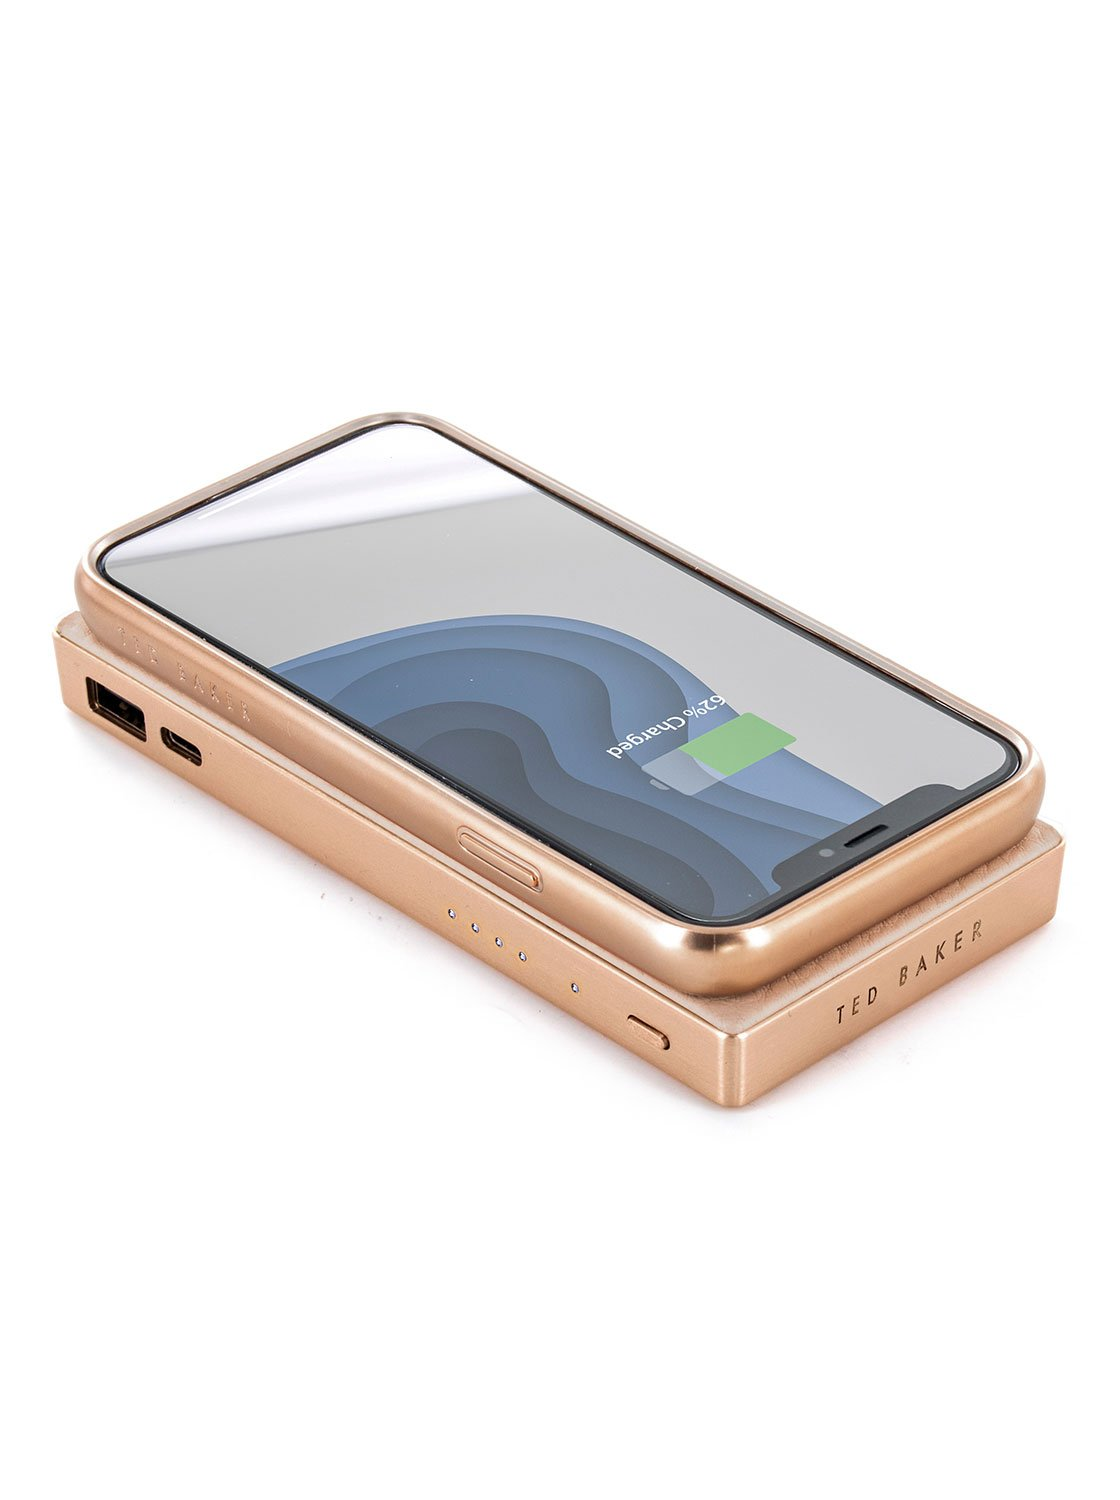 With compatible device image of the Ted Baker Universal wireless charger in Taupe